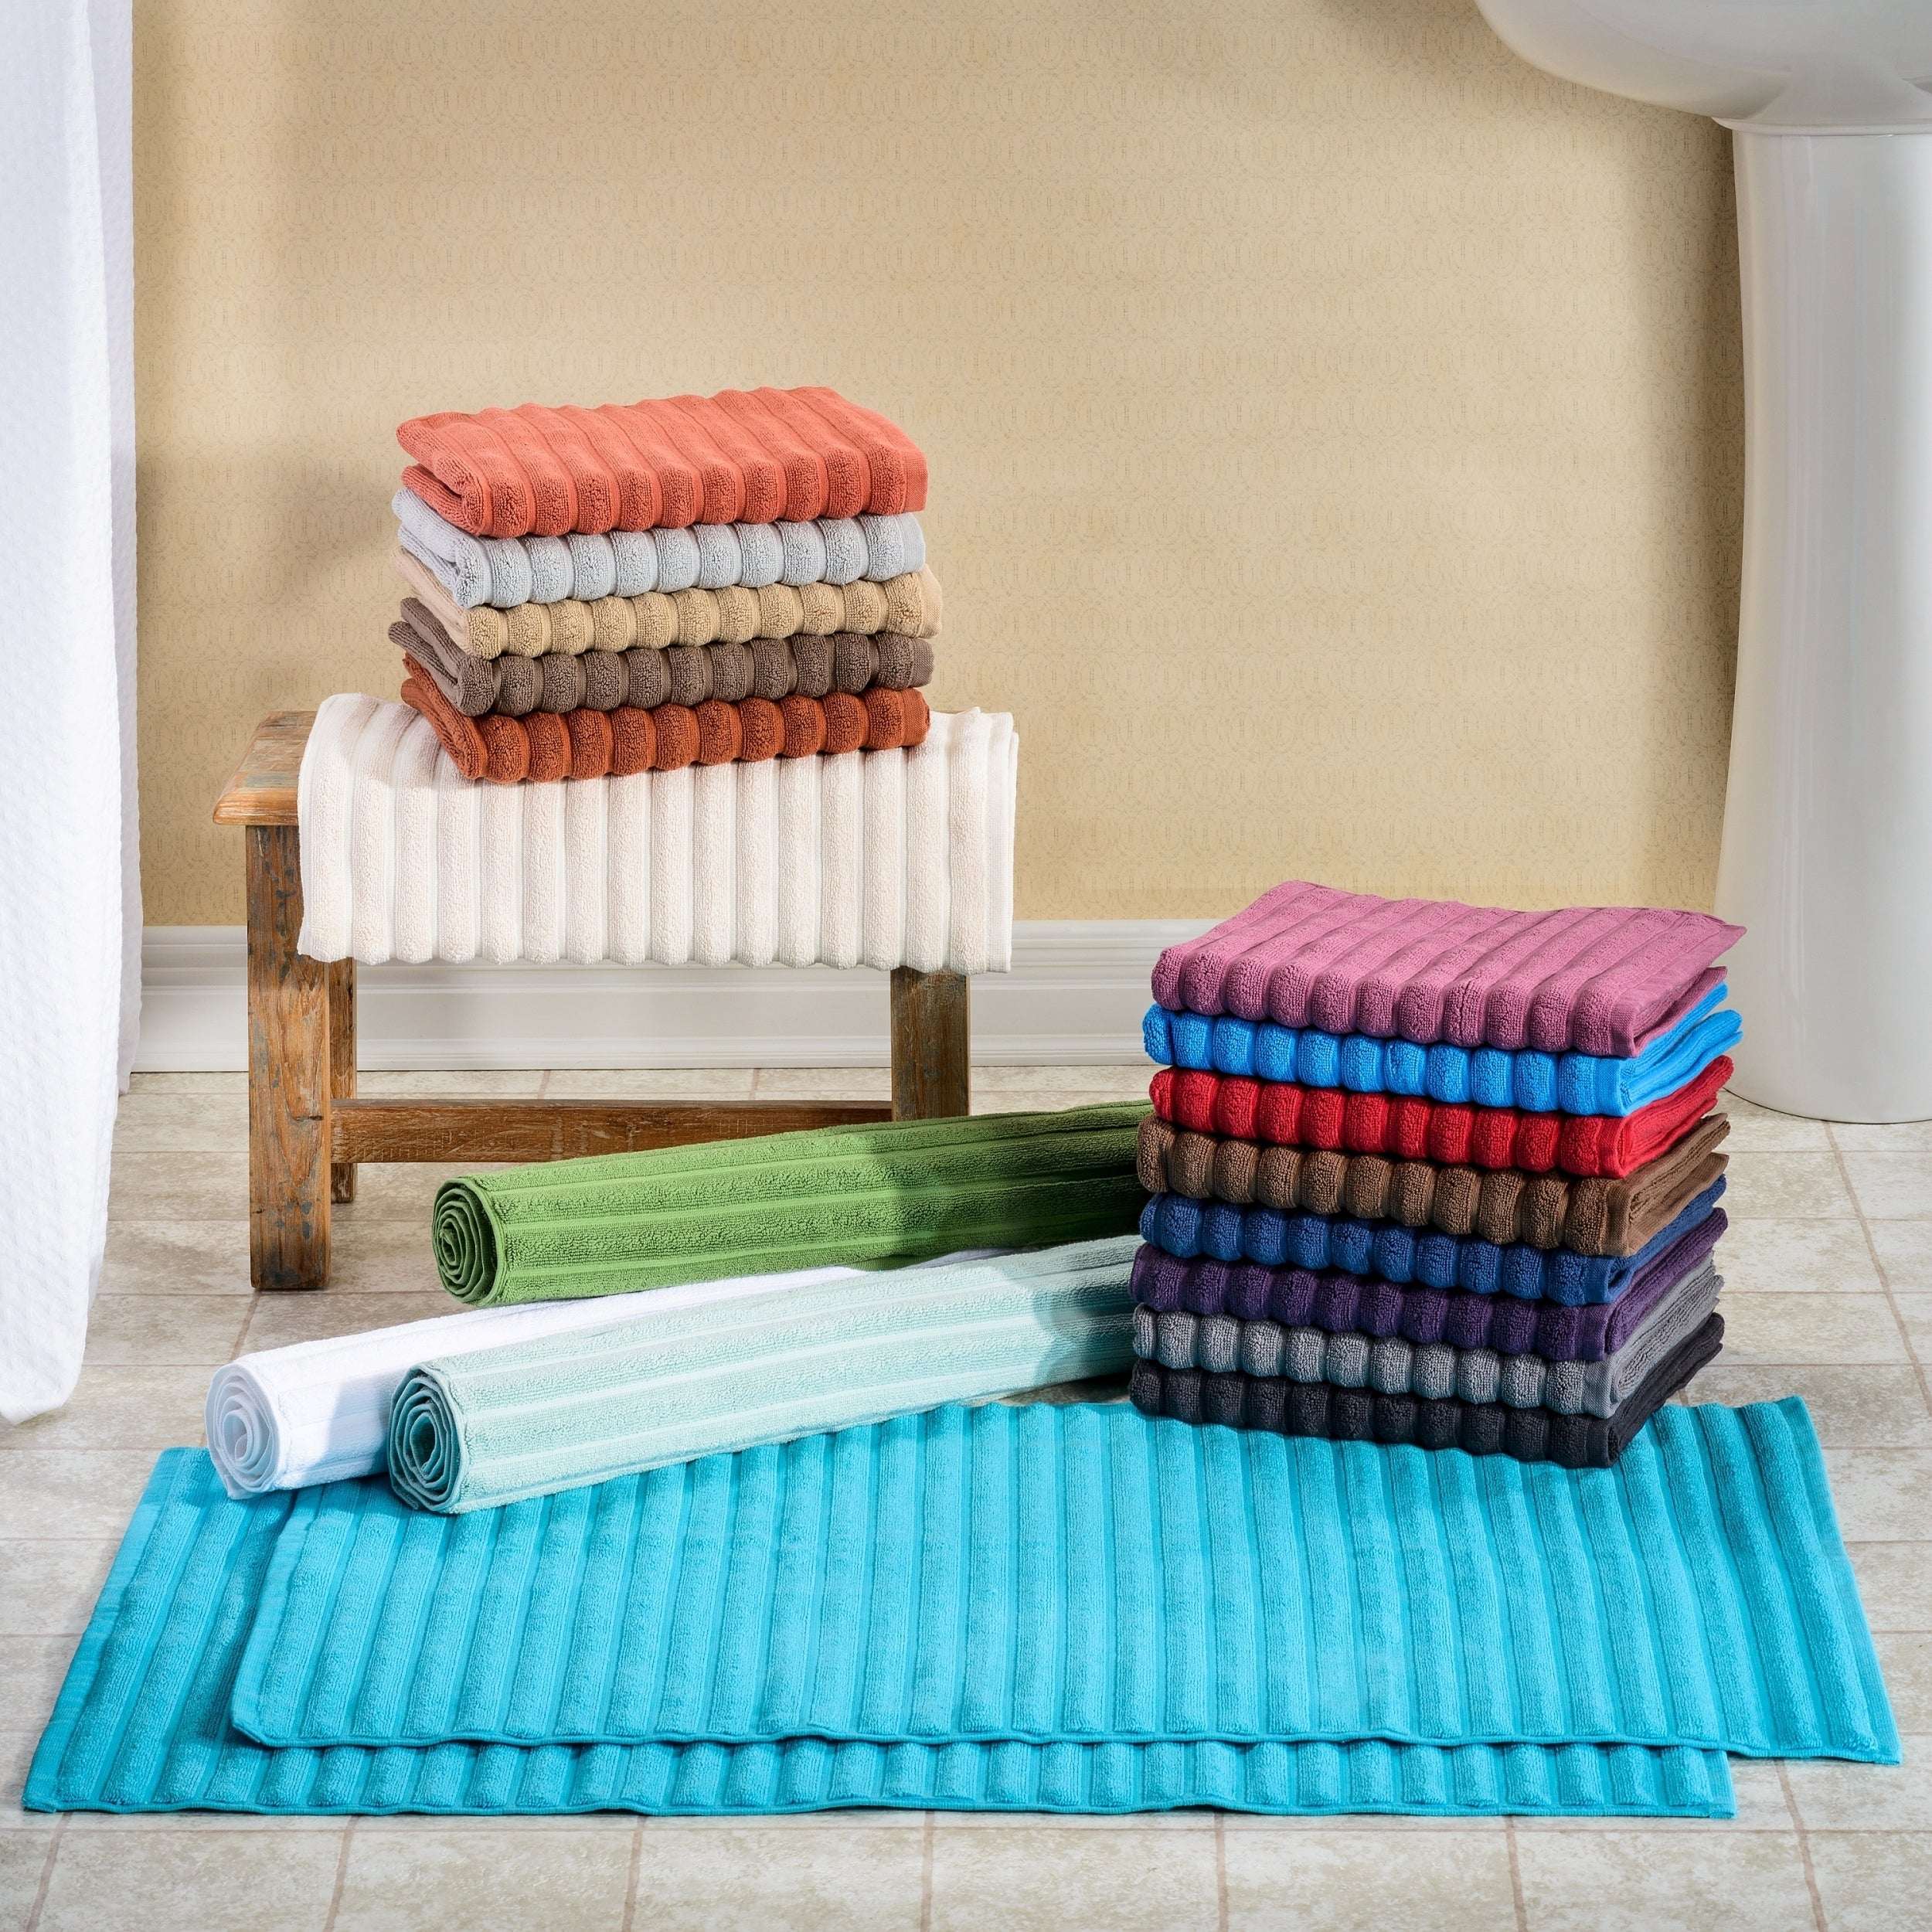 Superior Eco-Friendly Cotton Soft and Absorbent Bath Mat ...